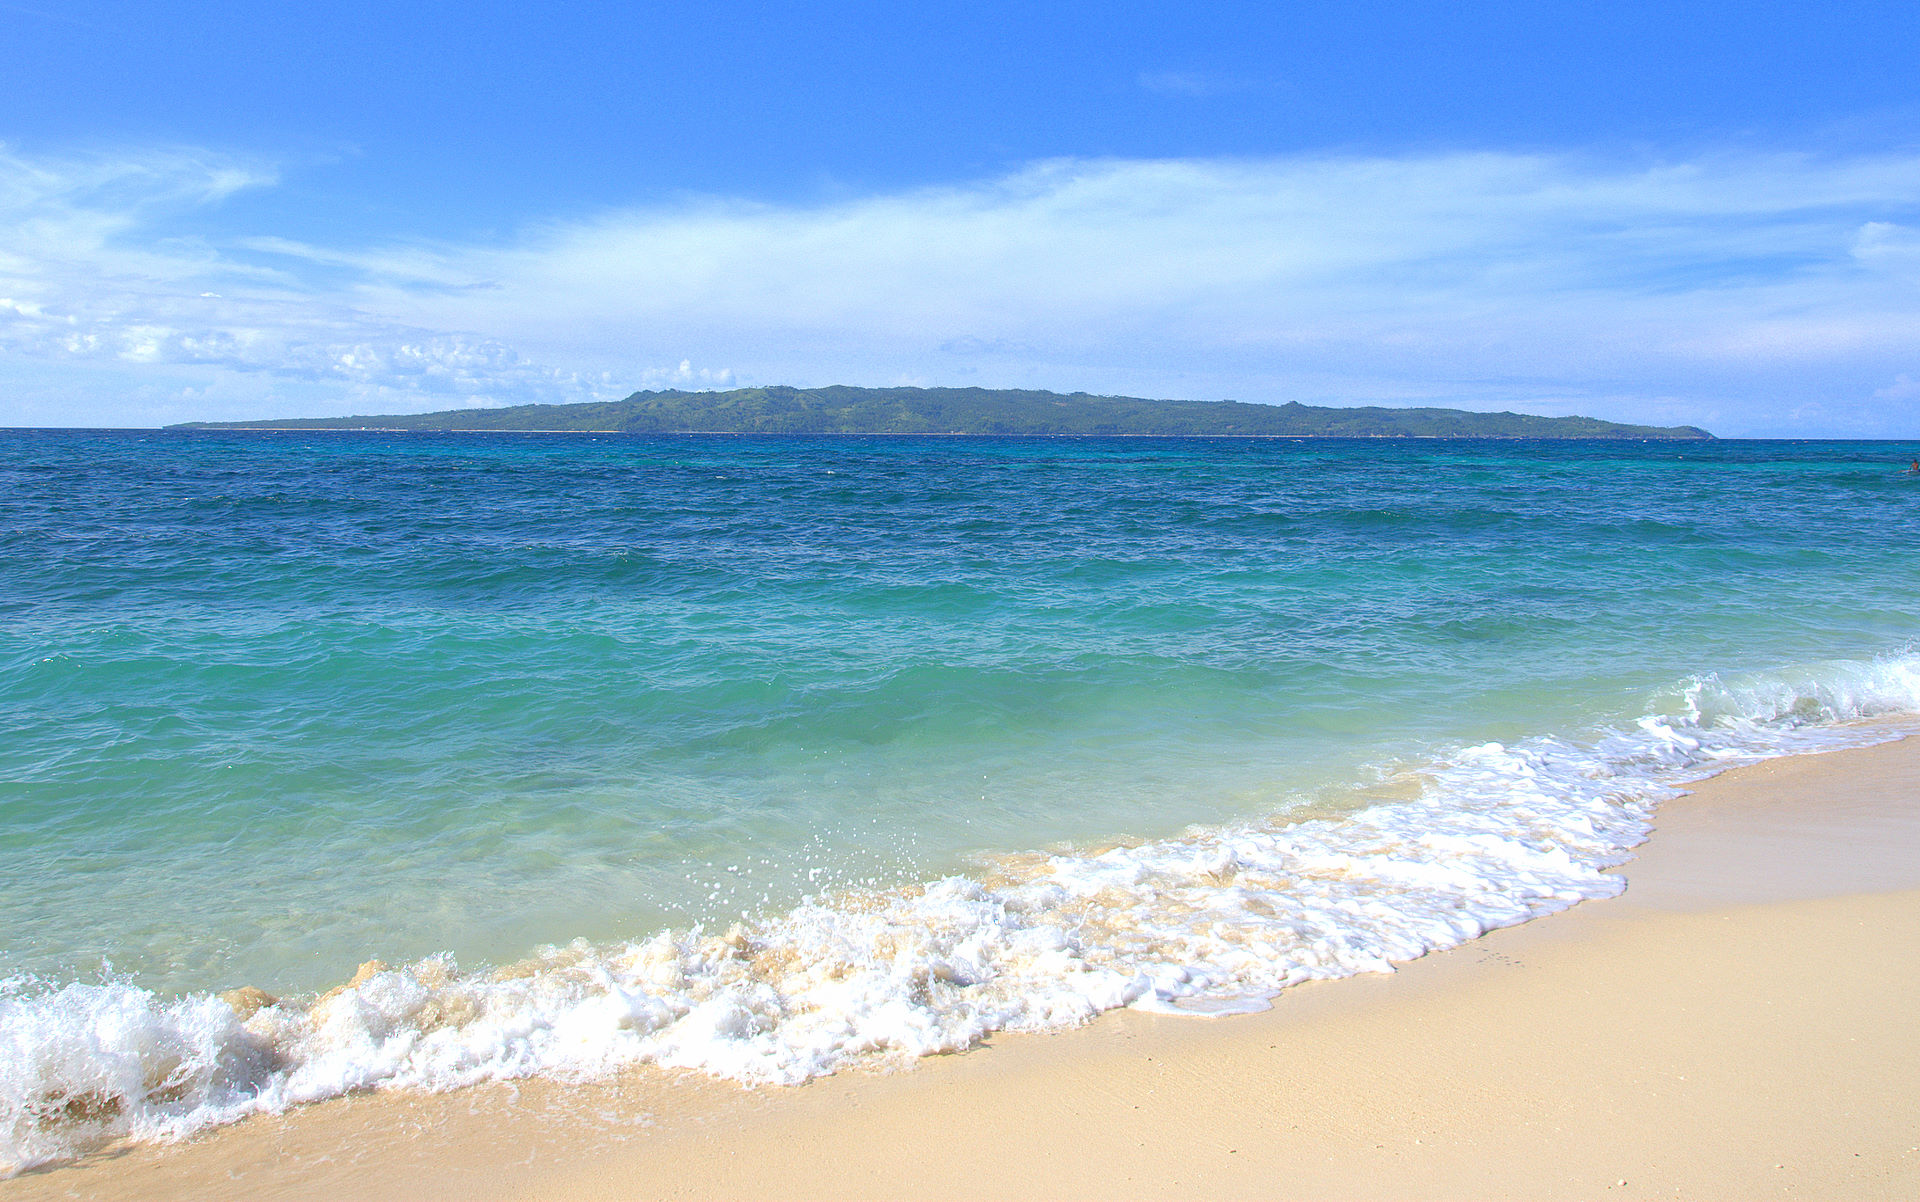 44 free wallpaper hawaii beach scenes on wallpapersafari - Ocean pictures for desktop background ...